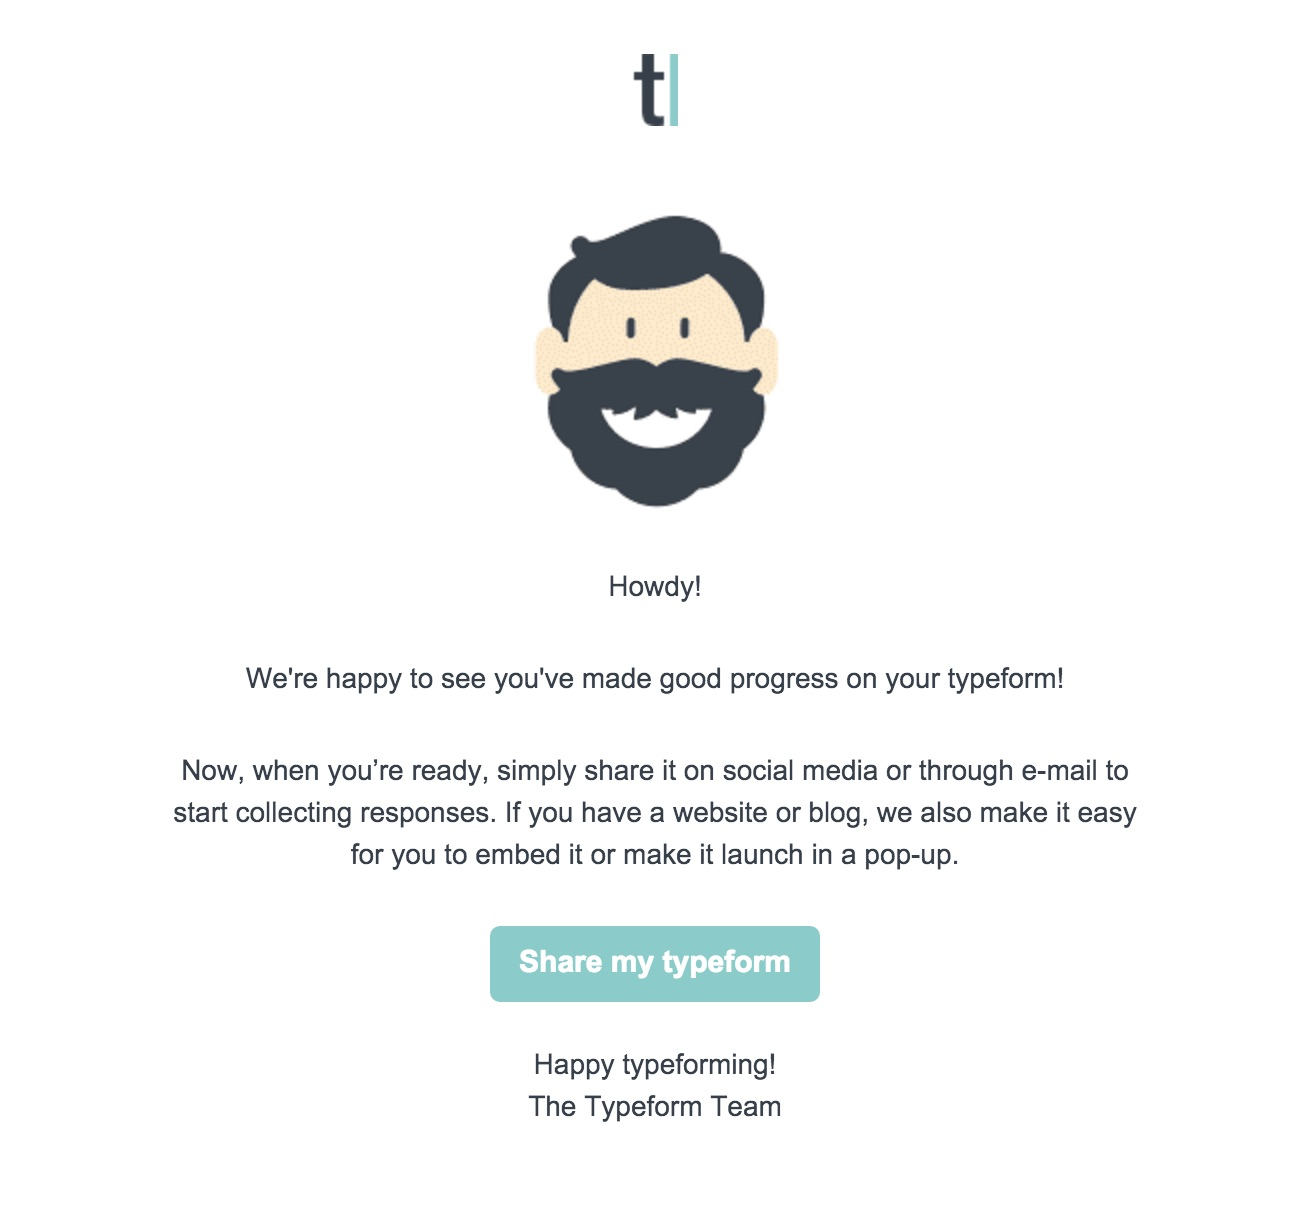 Typeform user onboarding email